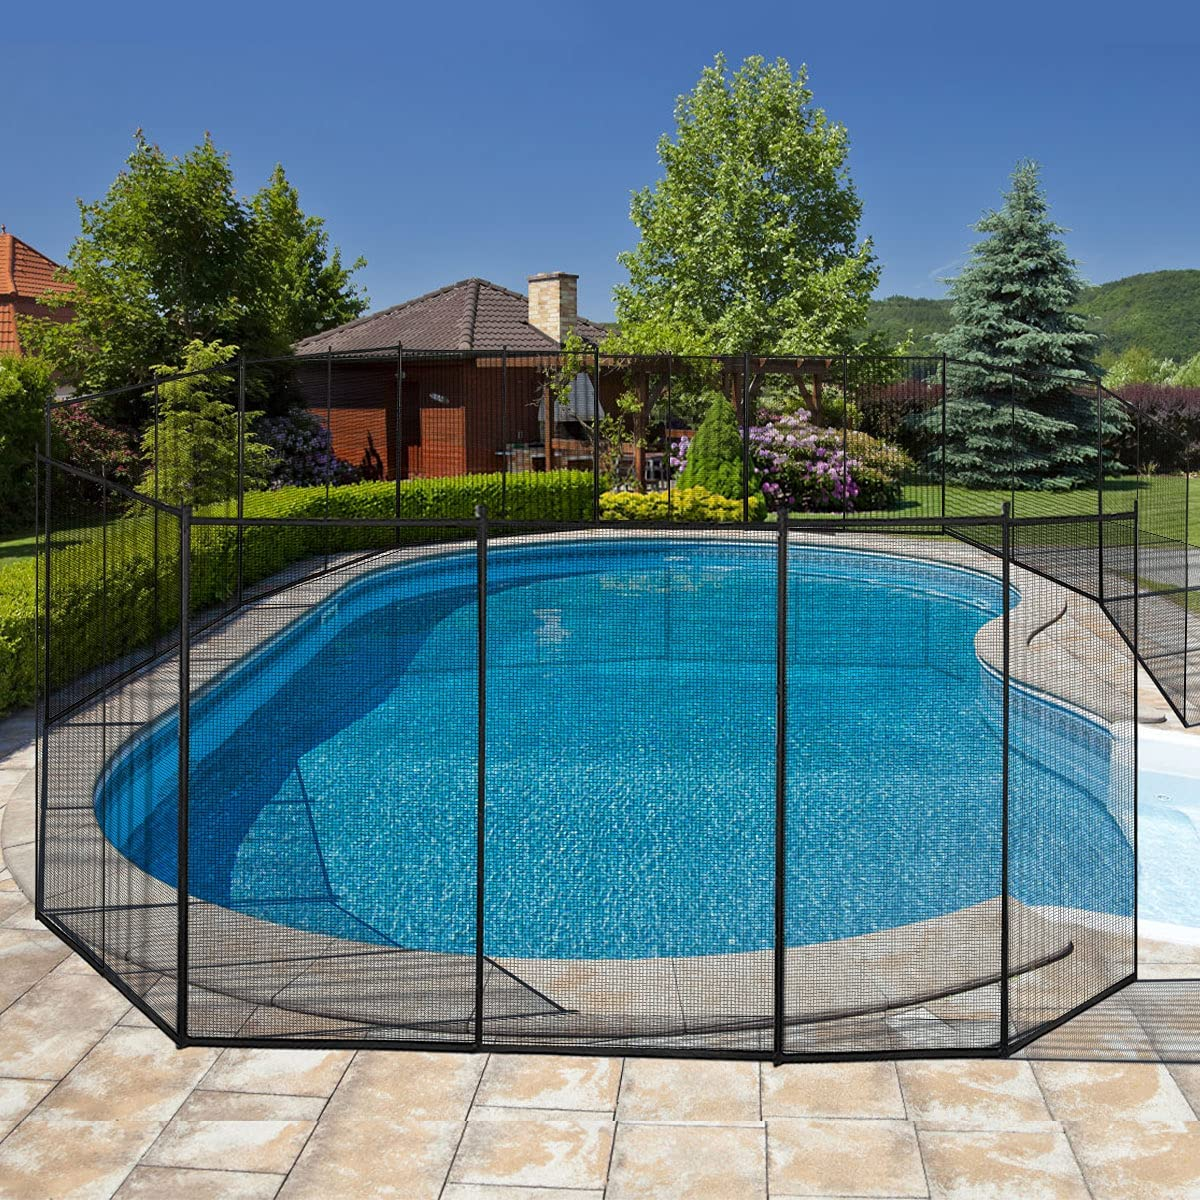 Giantex Pool Fence for In-Ground Easy DIY Installation Pool Barrier Safety Mesh Fence 4FootX12Foot Swimming Pool Fence, Black